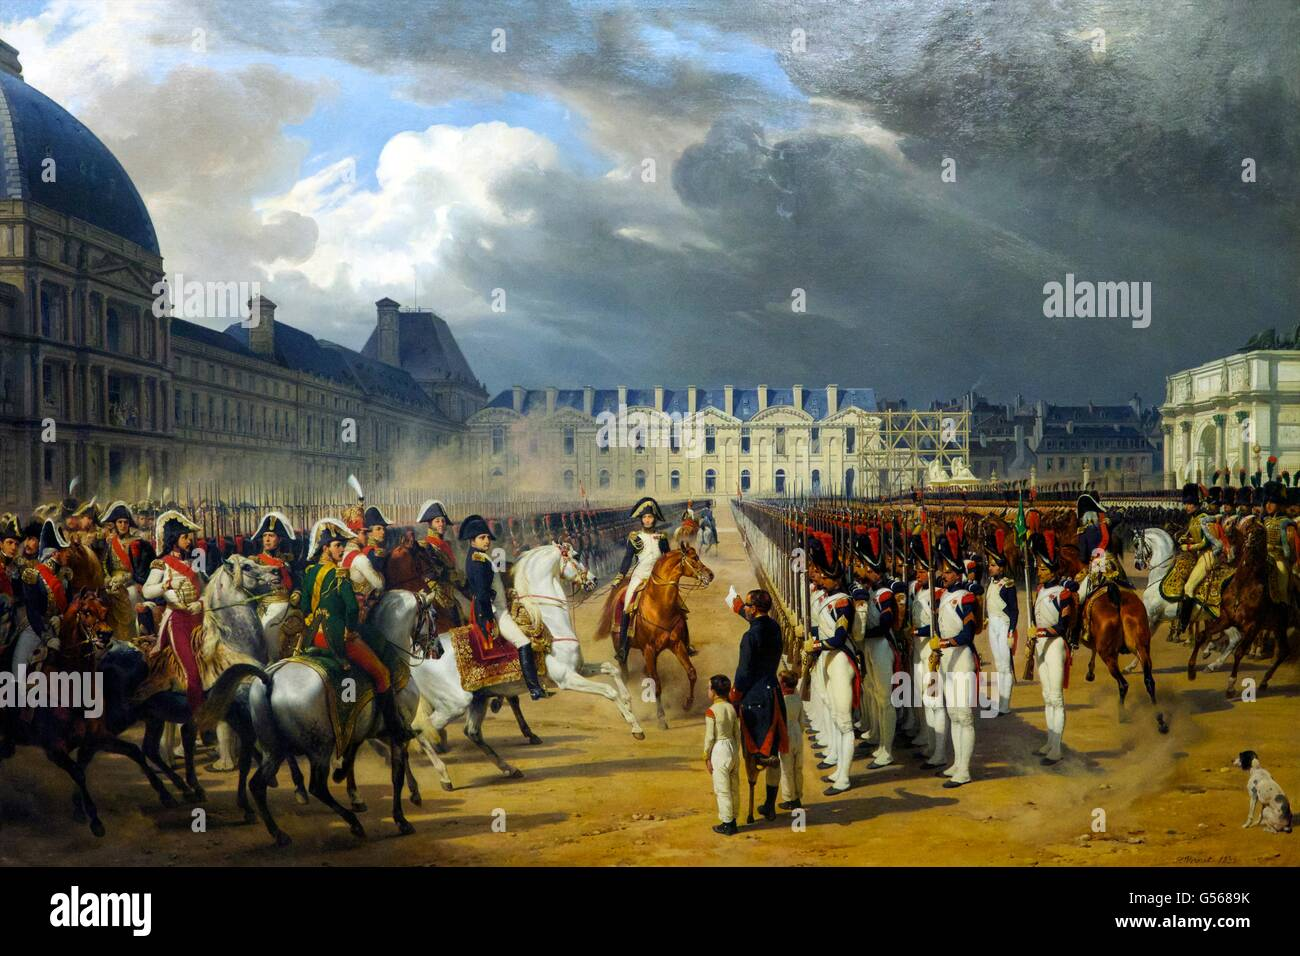 Invalid Handing a Petition to Napoleon at the Parade in the Court of the Tuileries Palace in Paris, by Horace Vernet, - Stock Image